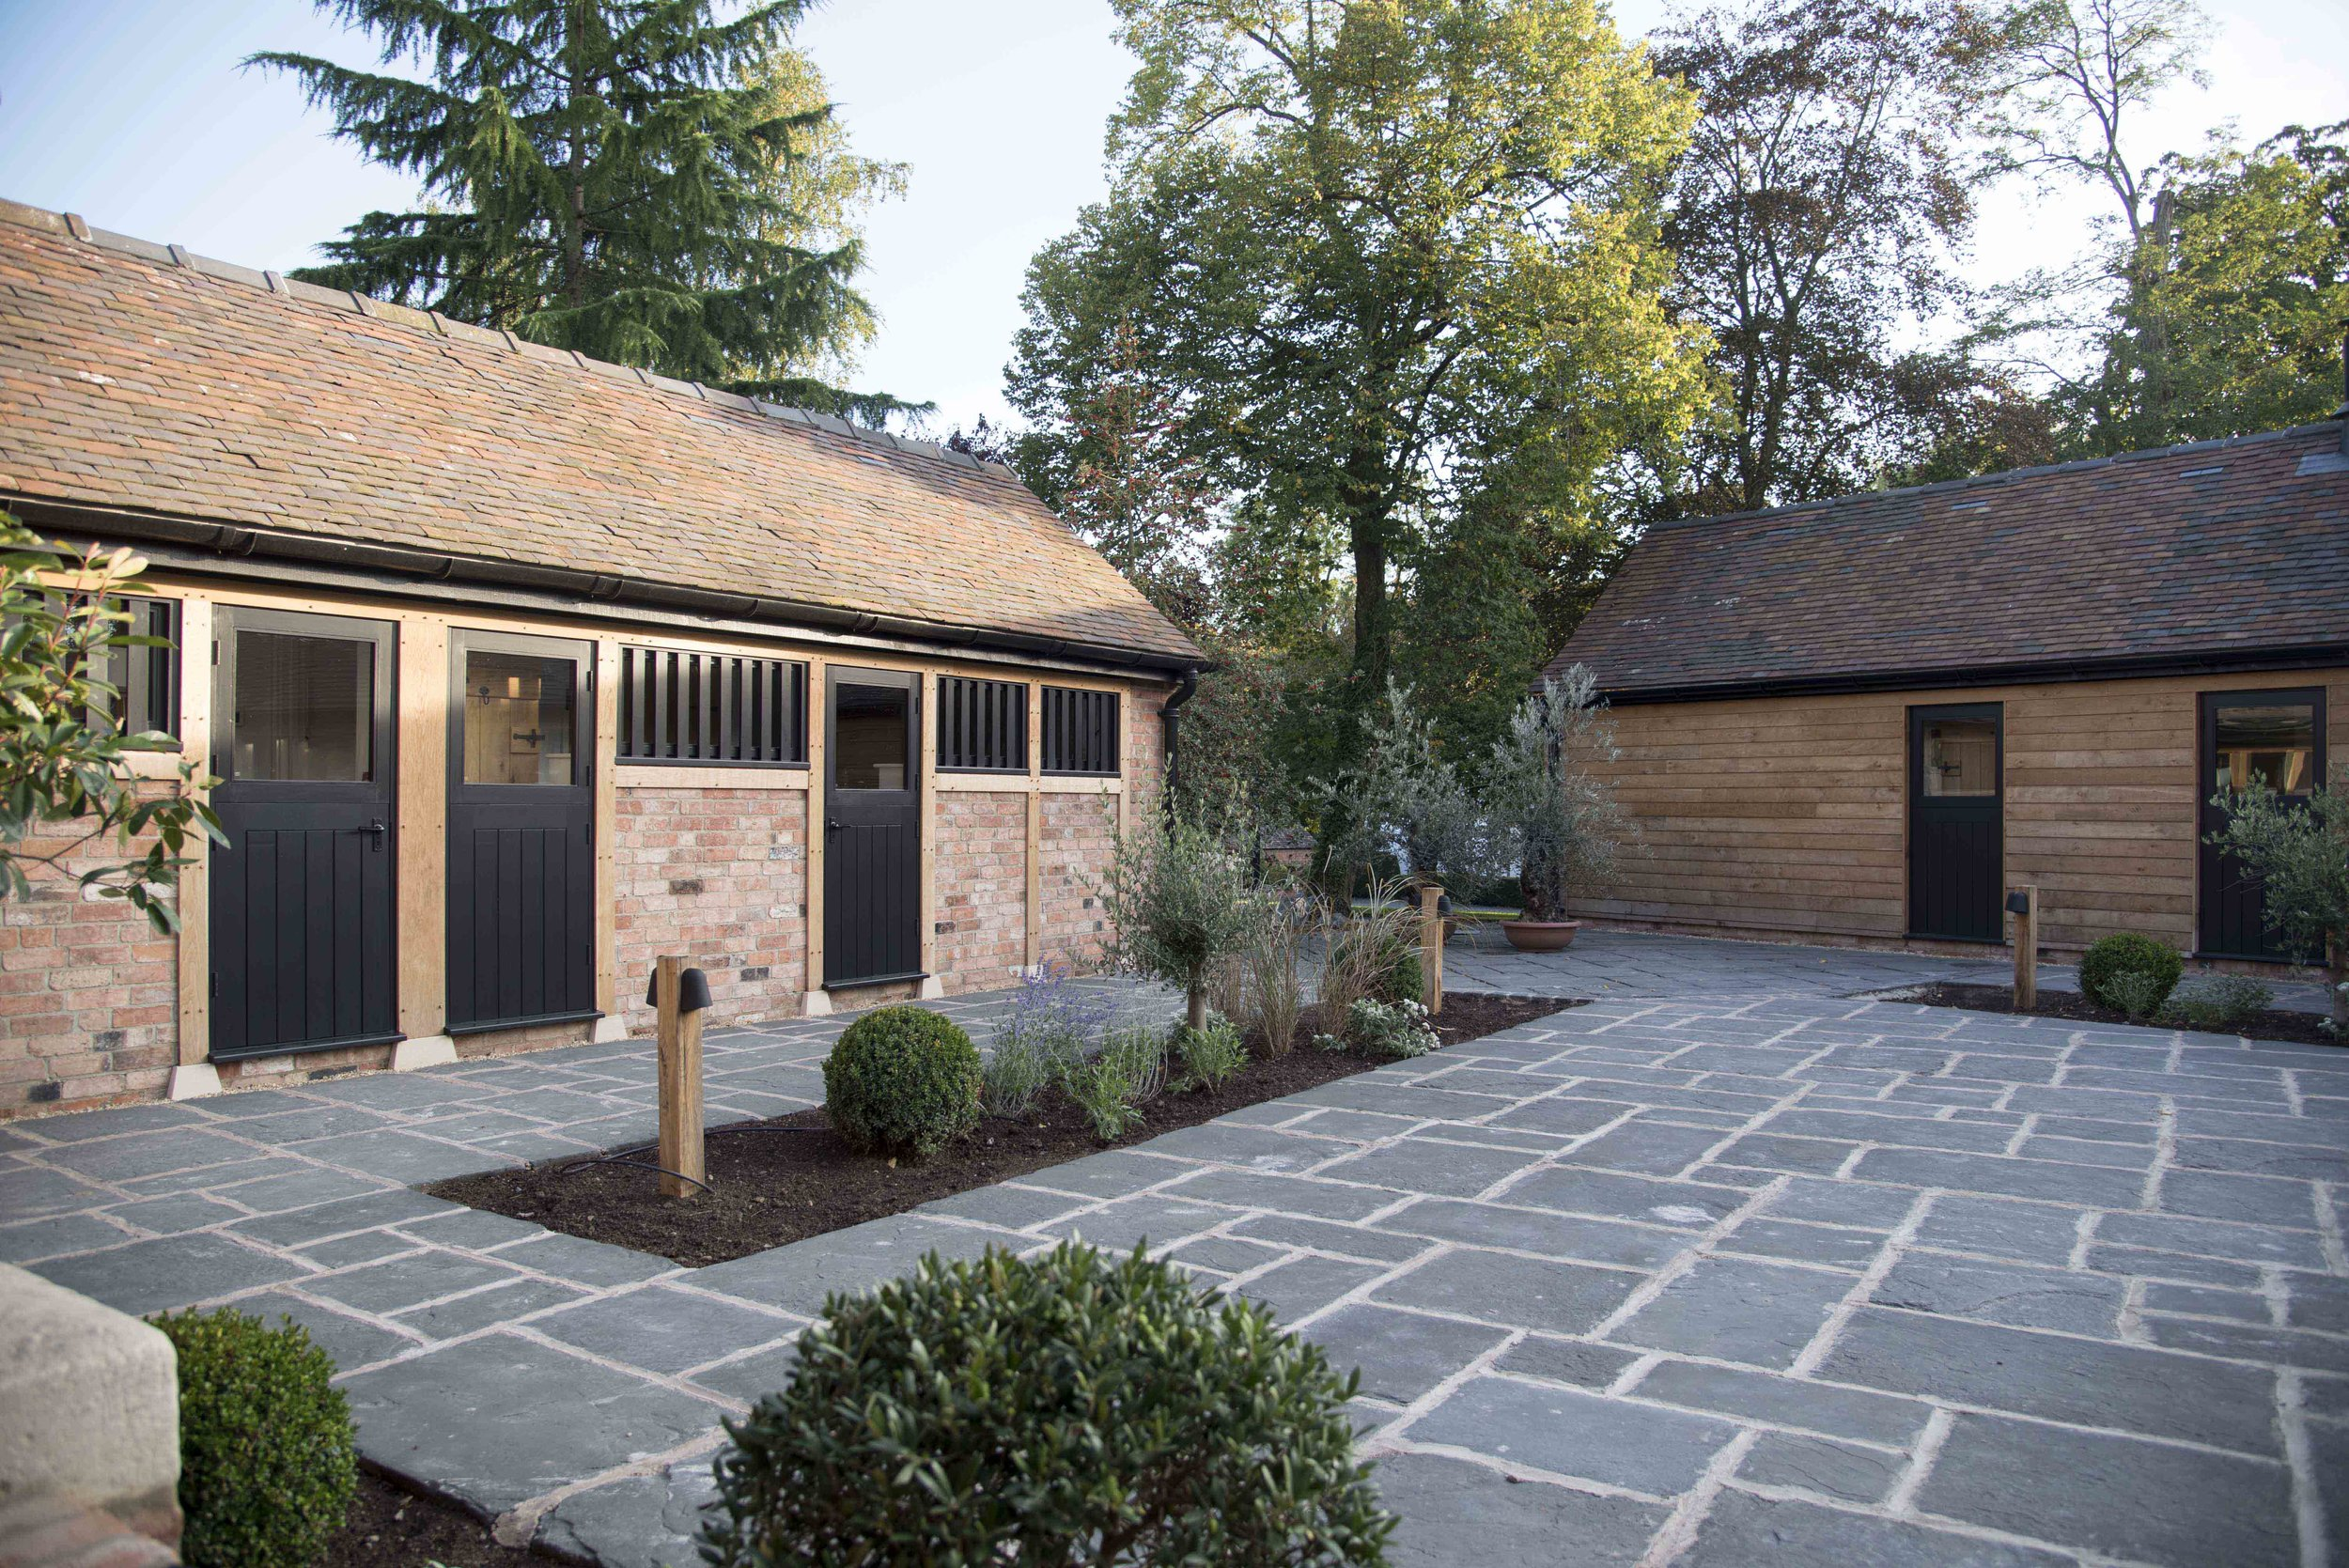 Wedding venue accomodation at Barns and Yard Worcestershire.jpg